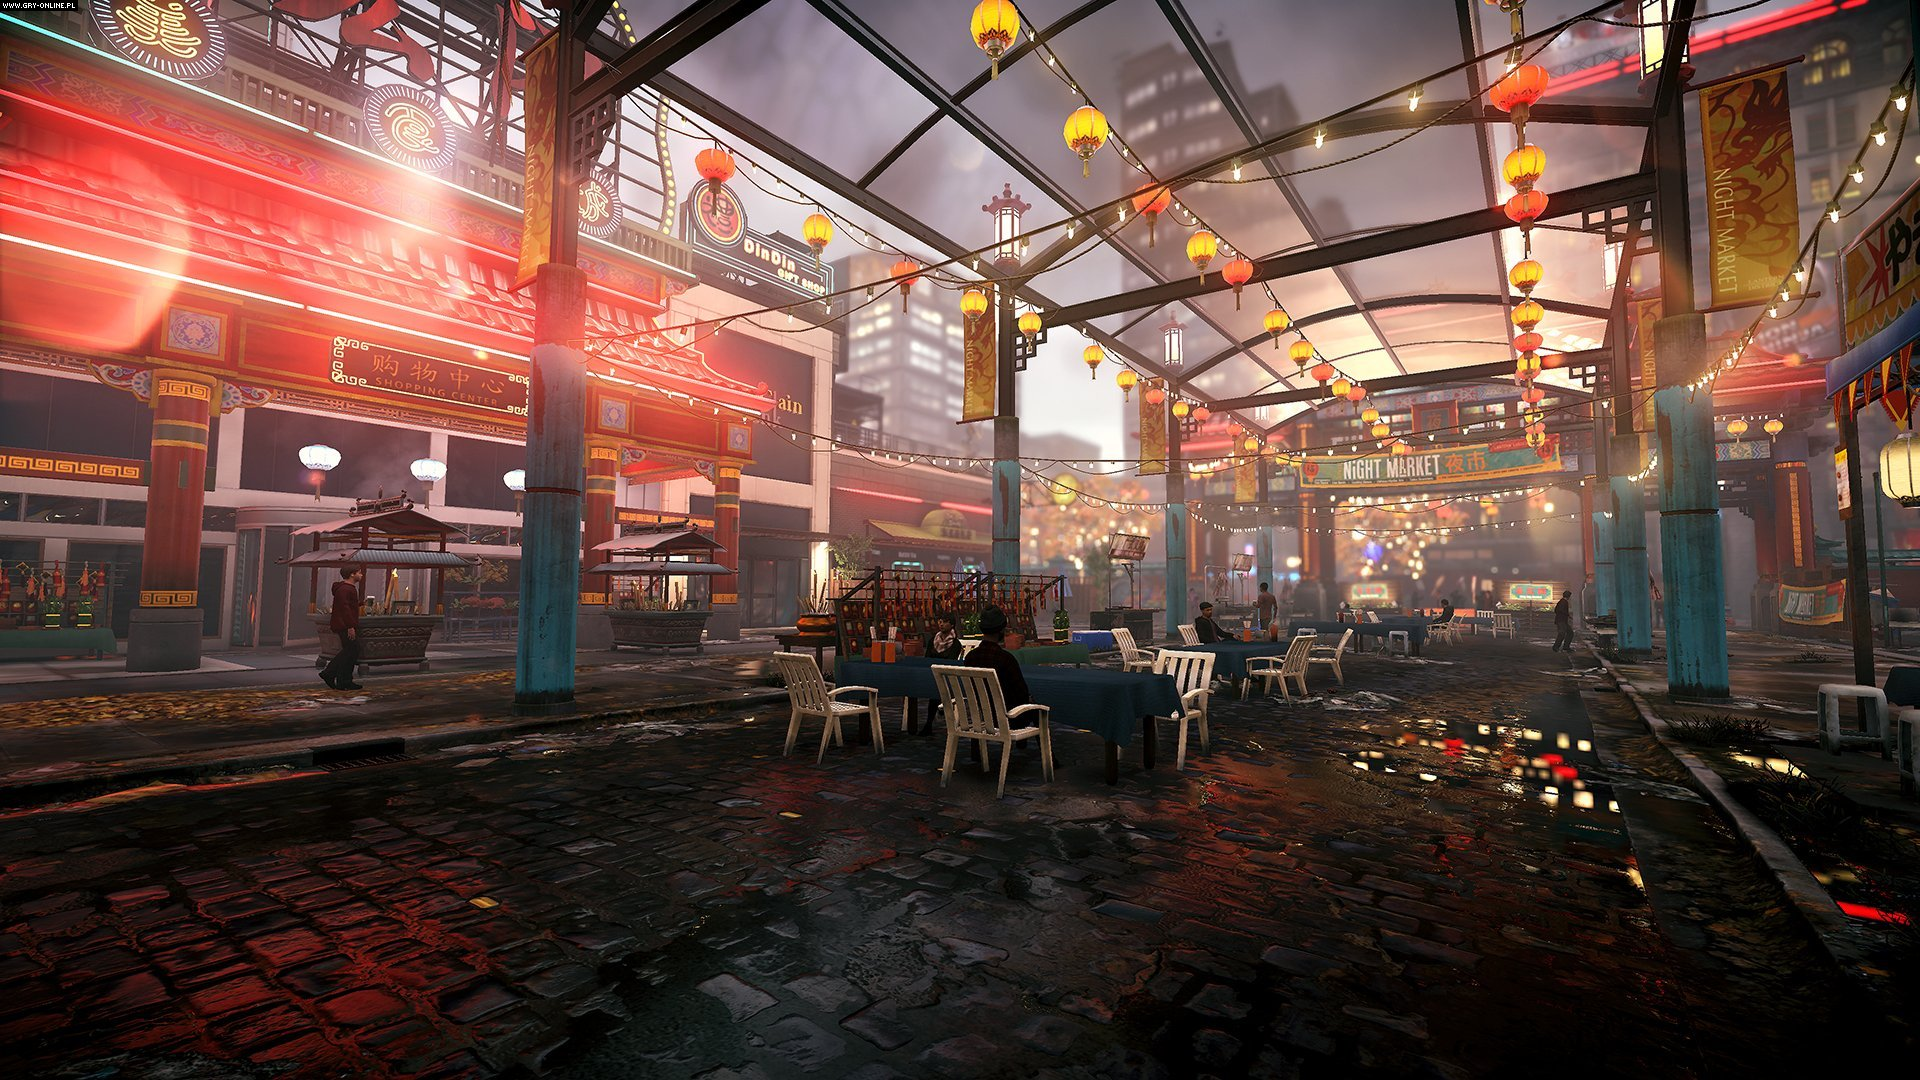 inFamous: Second Son PS4 Games Image 5/138, Sucker Punch, Sony Interactive Entertainment